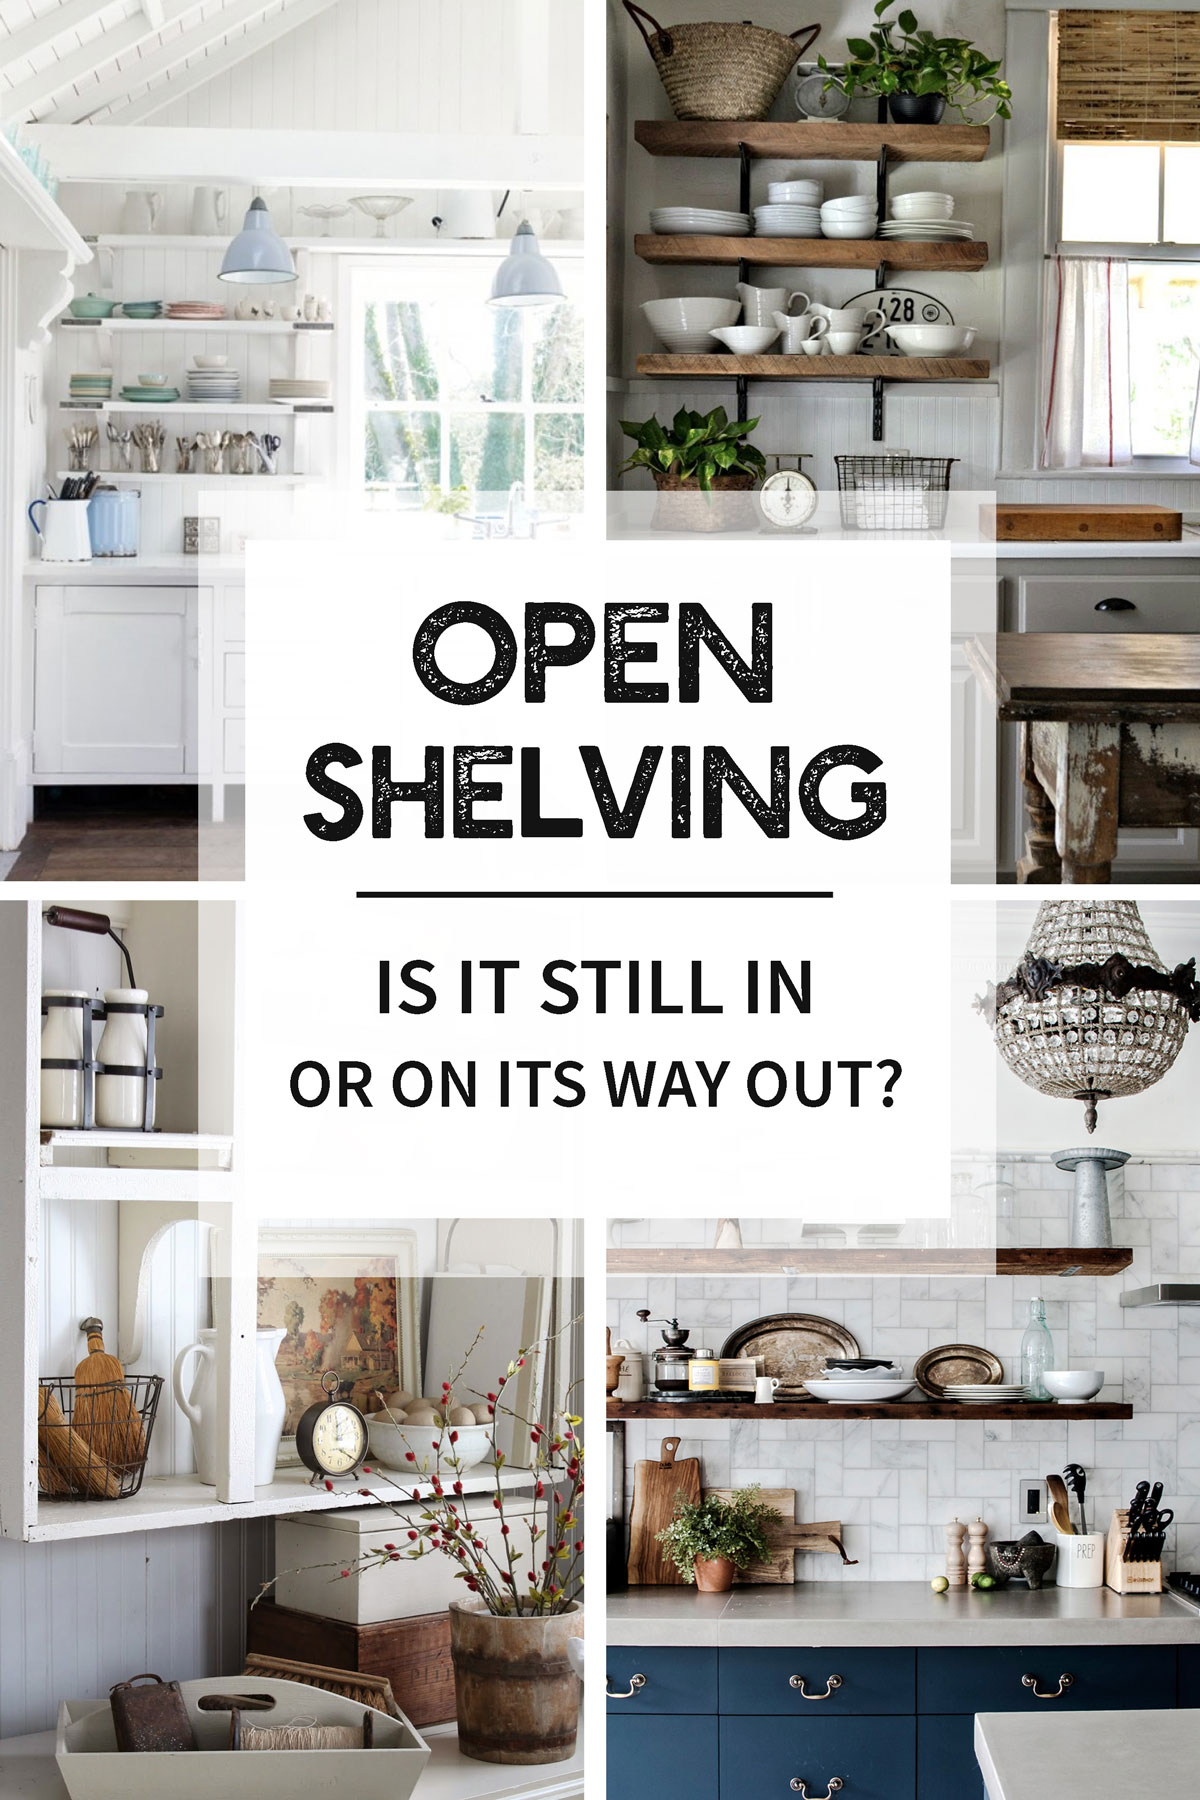 Open Shelving | Is it still in, or on its way out?? - Tidbits